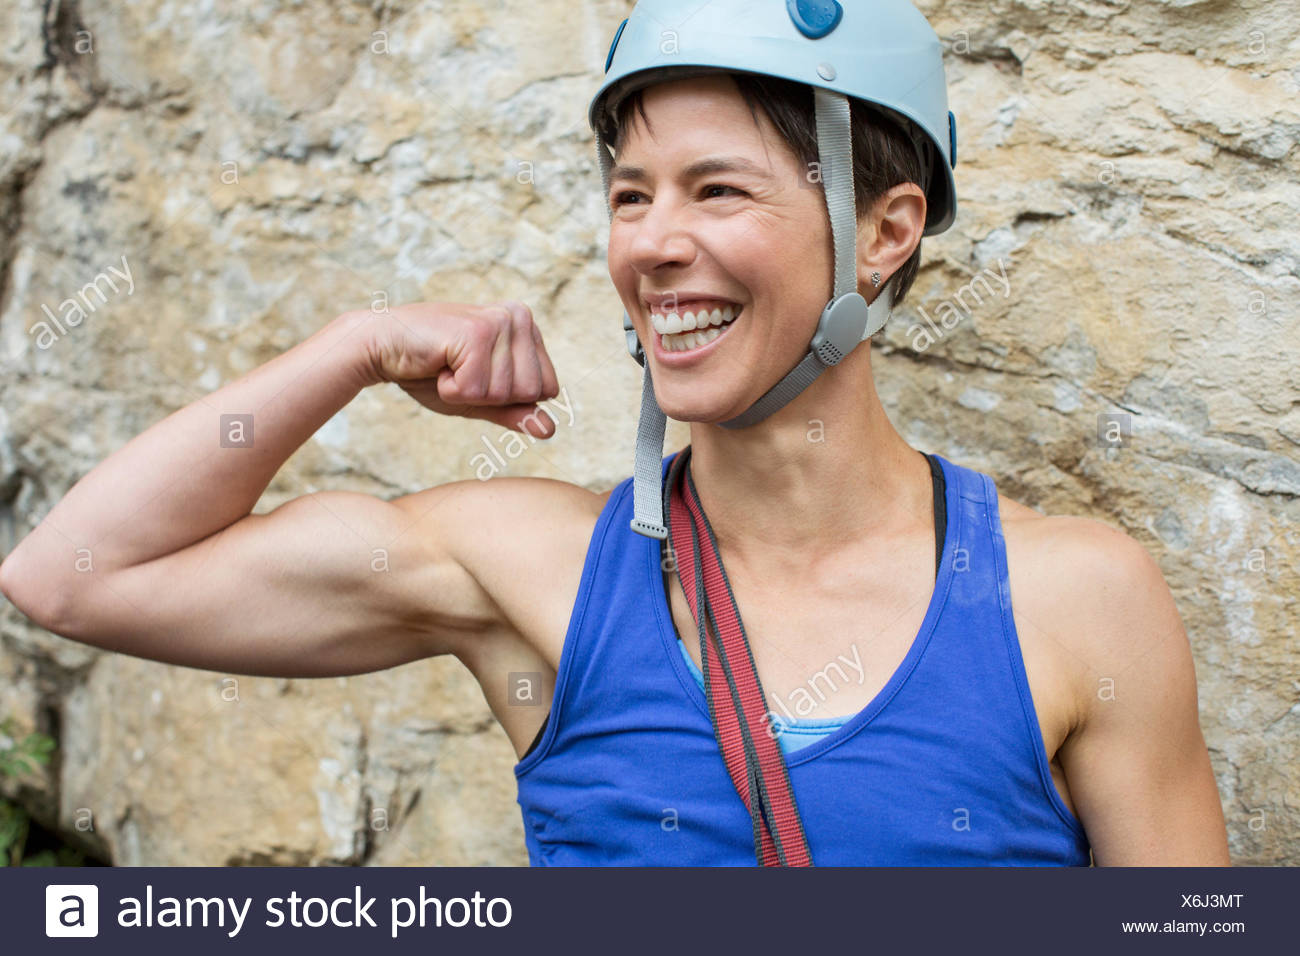 Female rock climber exhibant muscles Photo Stock